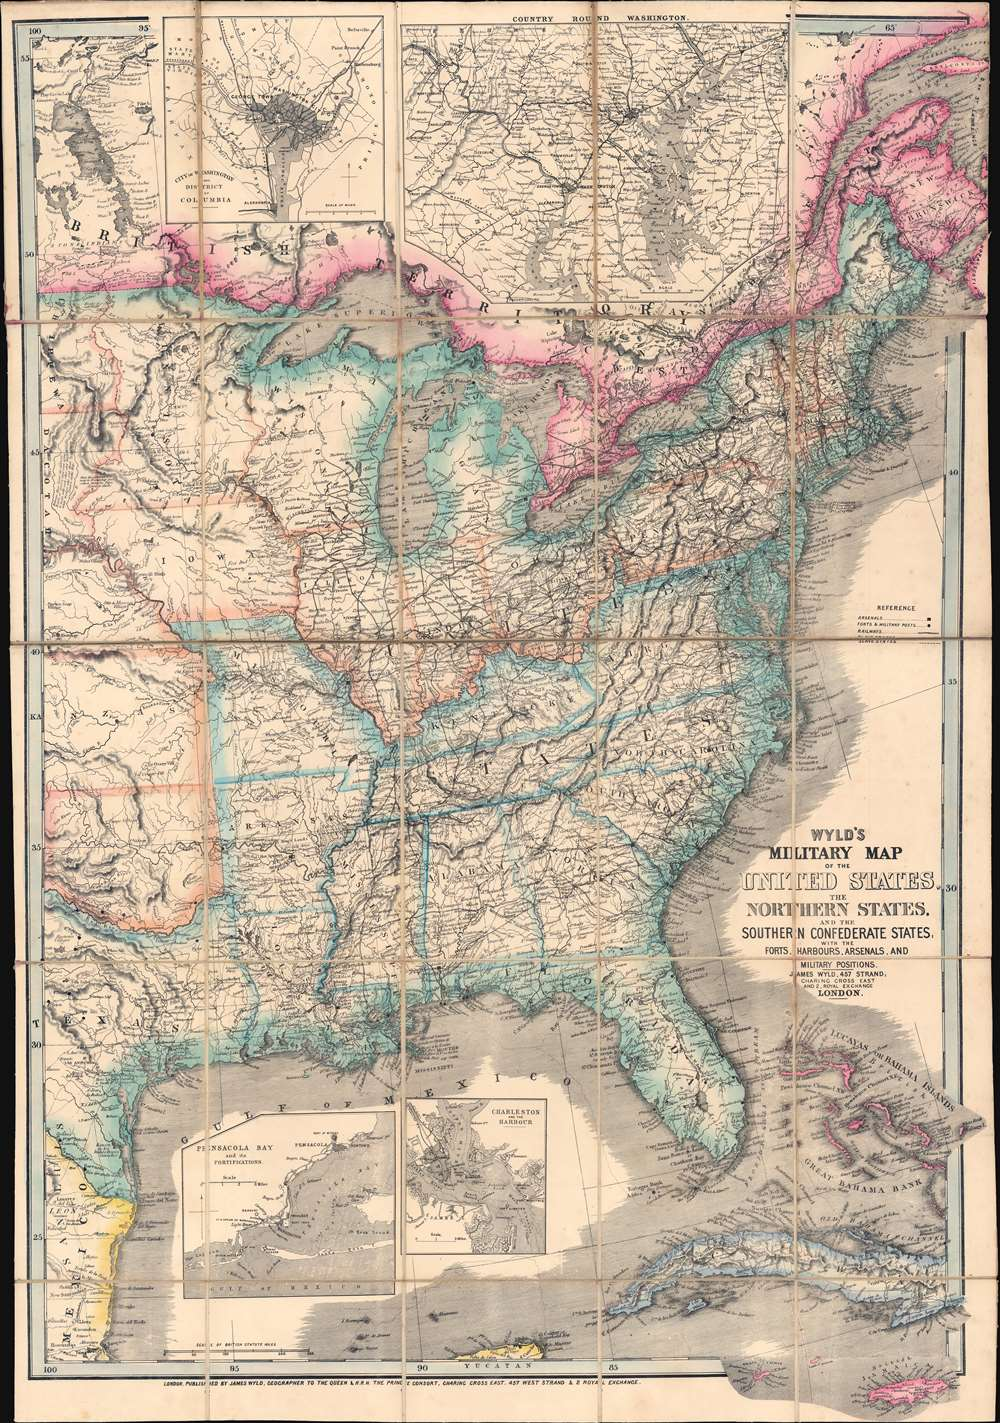 1861 Wyld Map of the United States during the Civil War